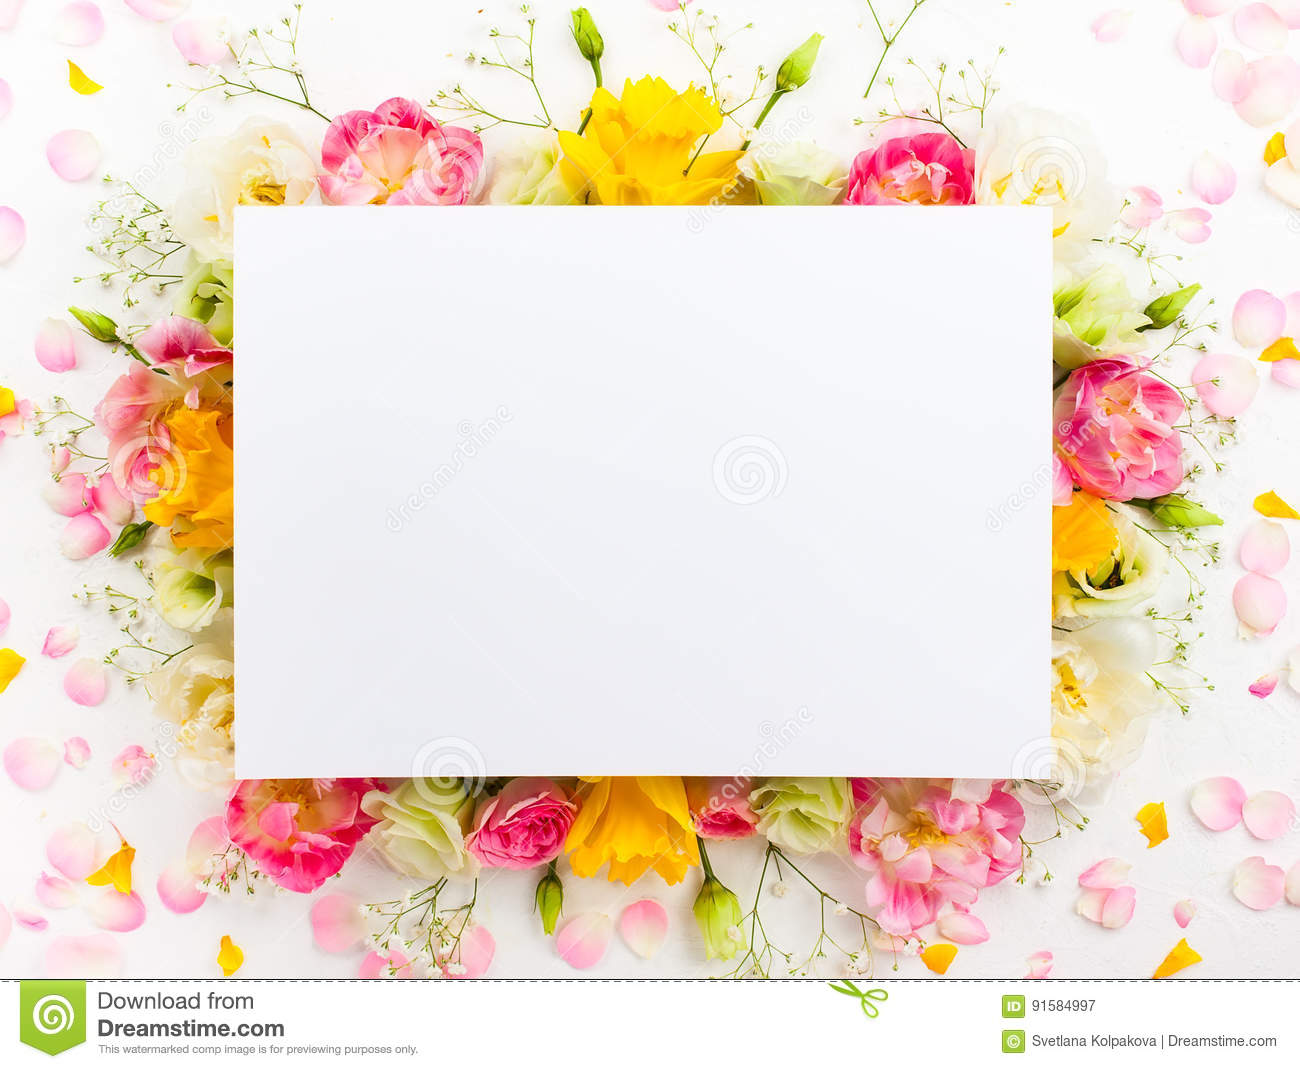 Flower frame stock image. Image of beautiful, love, birthday - 91584997